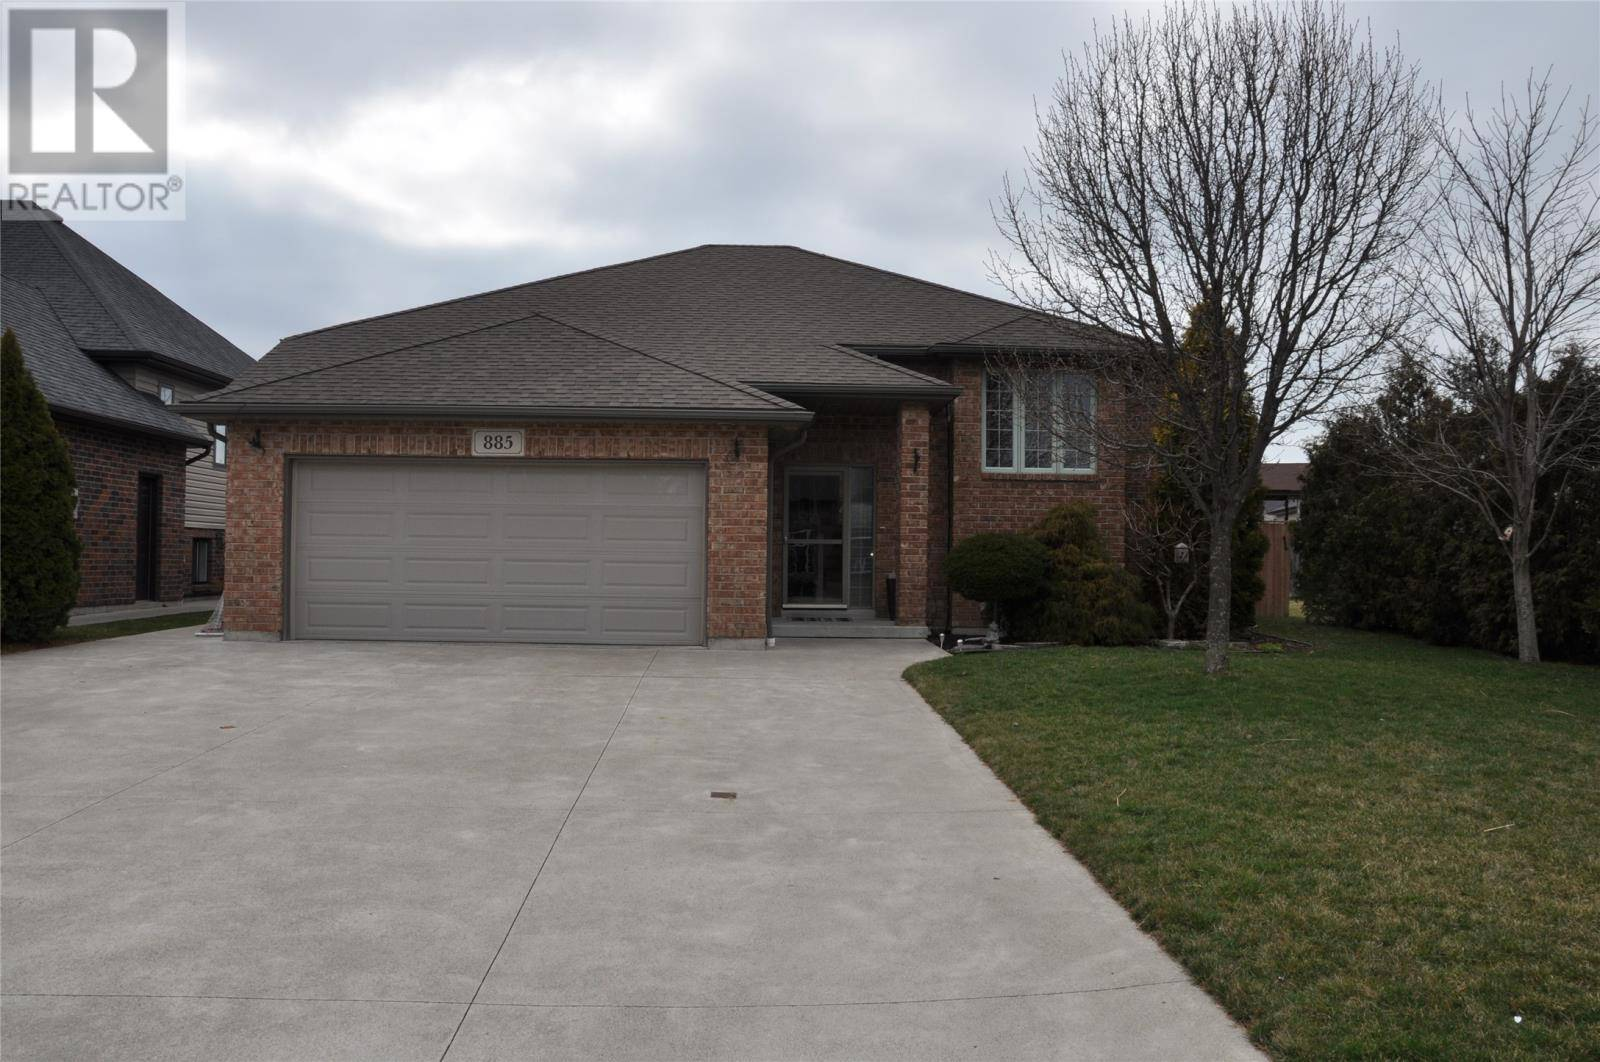 House for sale at 885 Driftwood  Belle River Ontario - MLS: 20003723